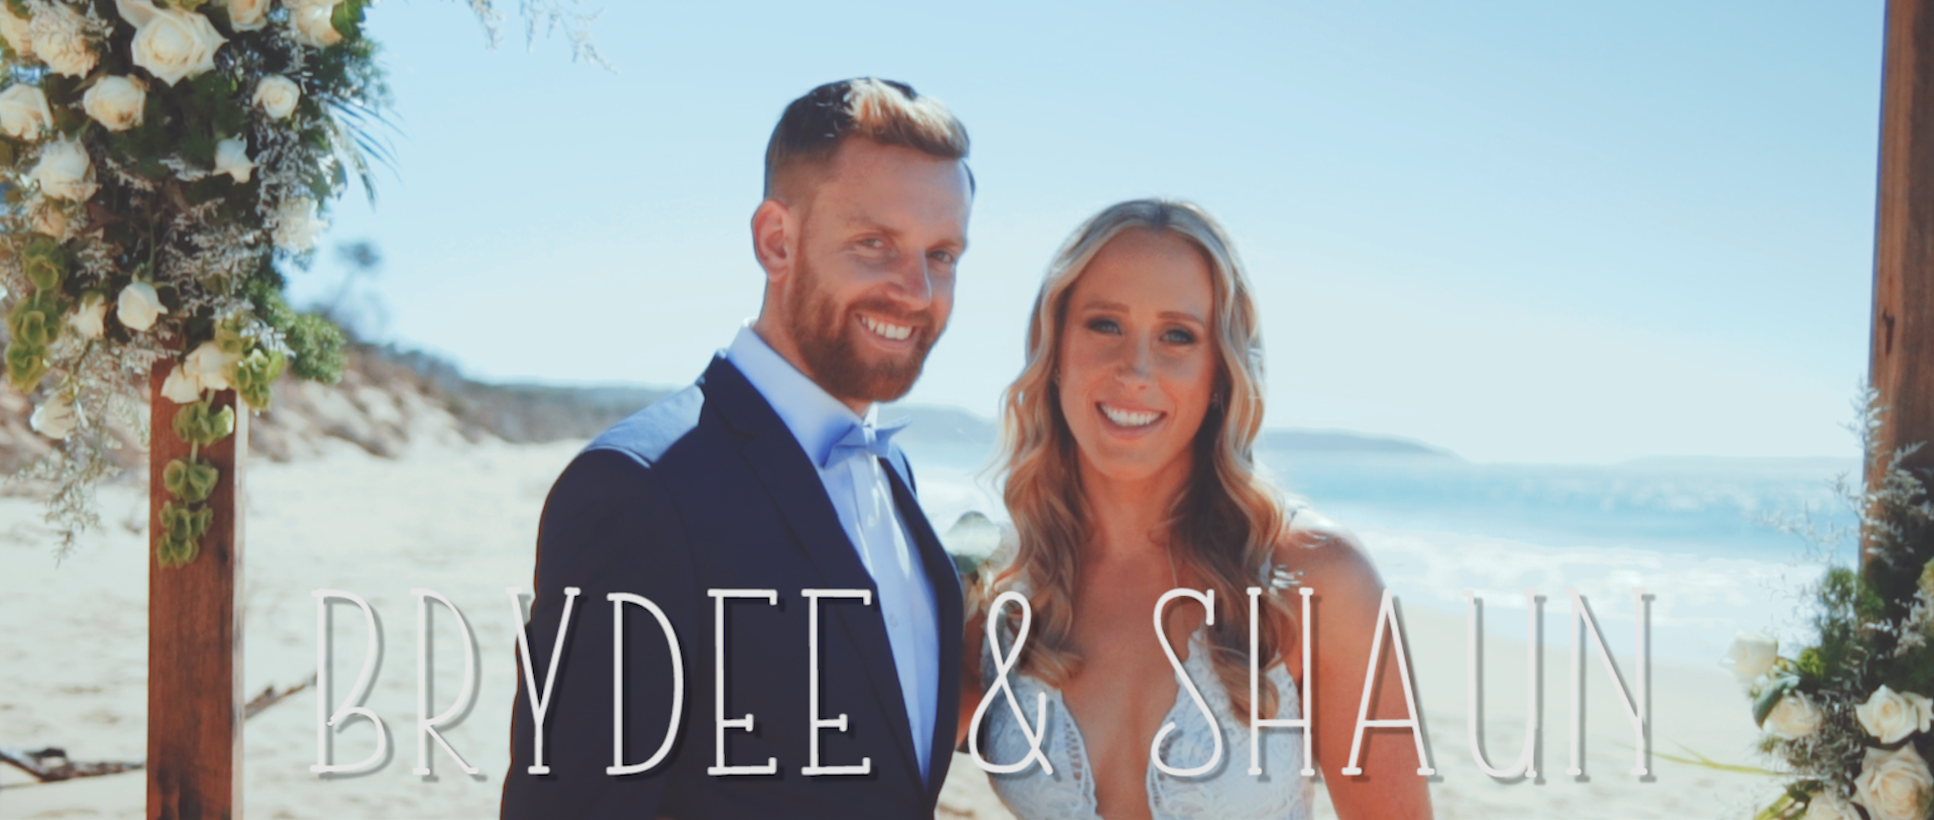 Brydee + Shaun | Sorrento, Australia | The Baths